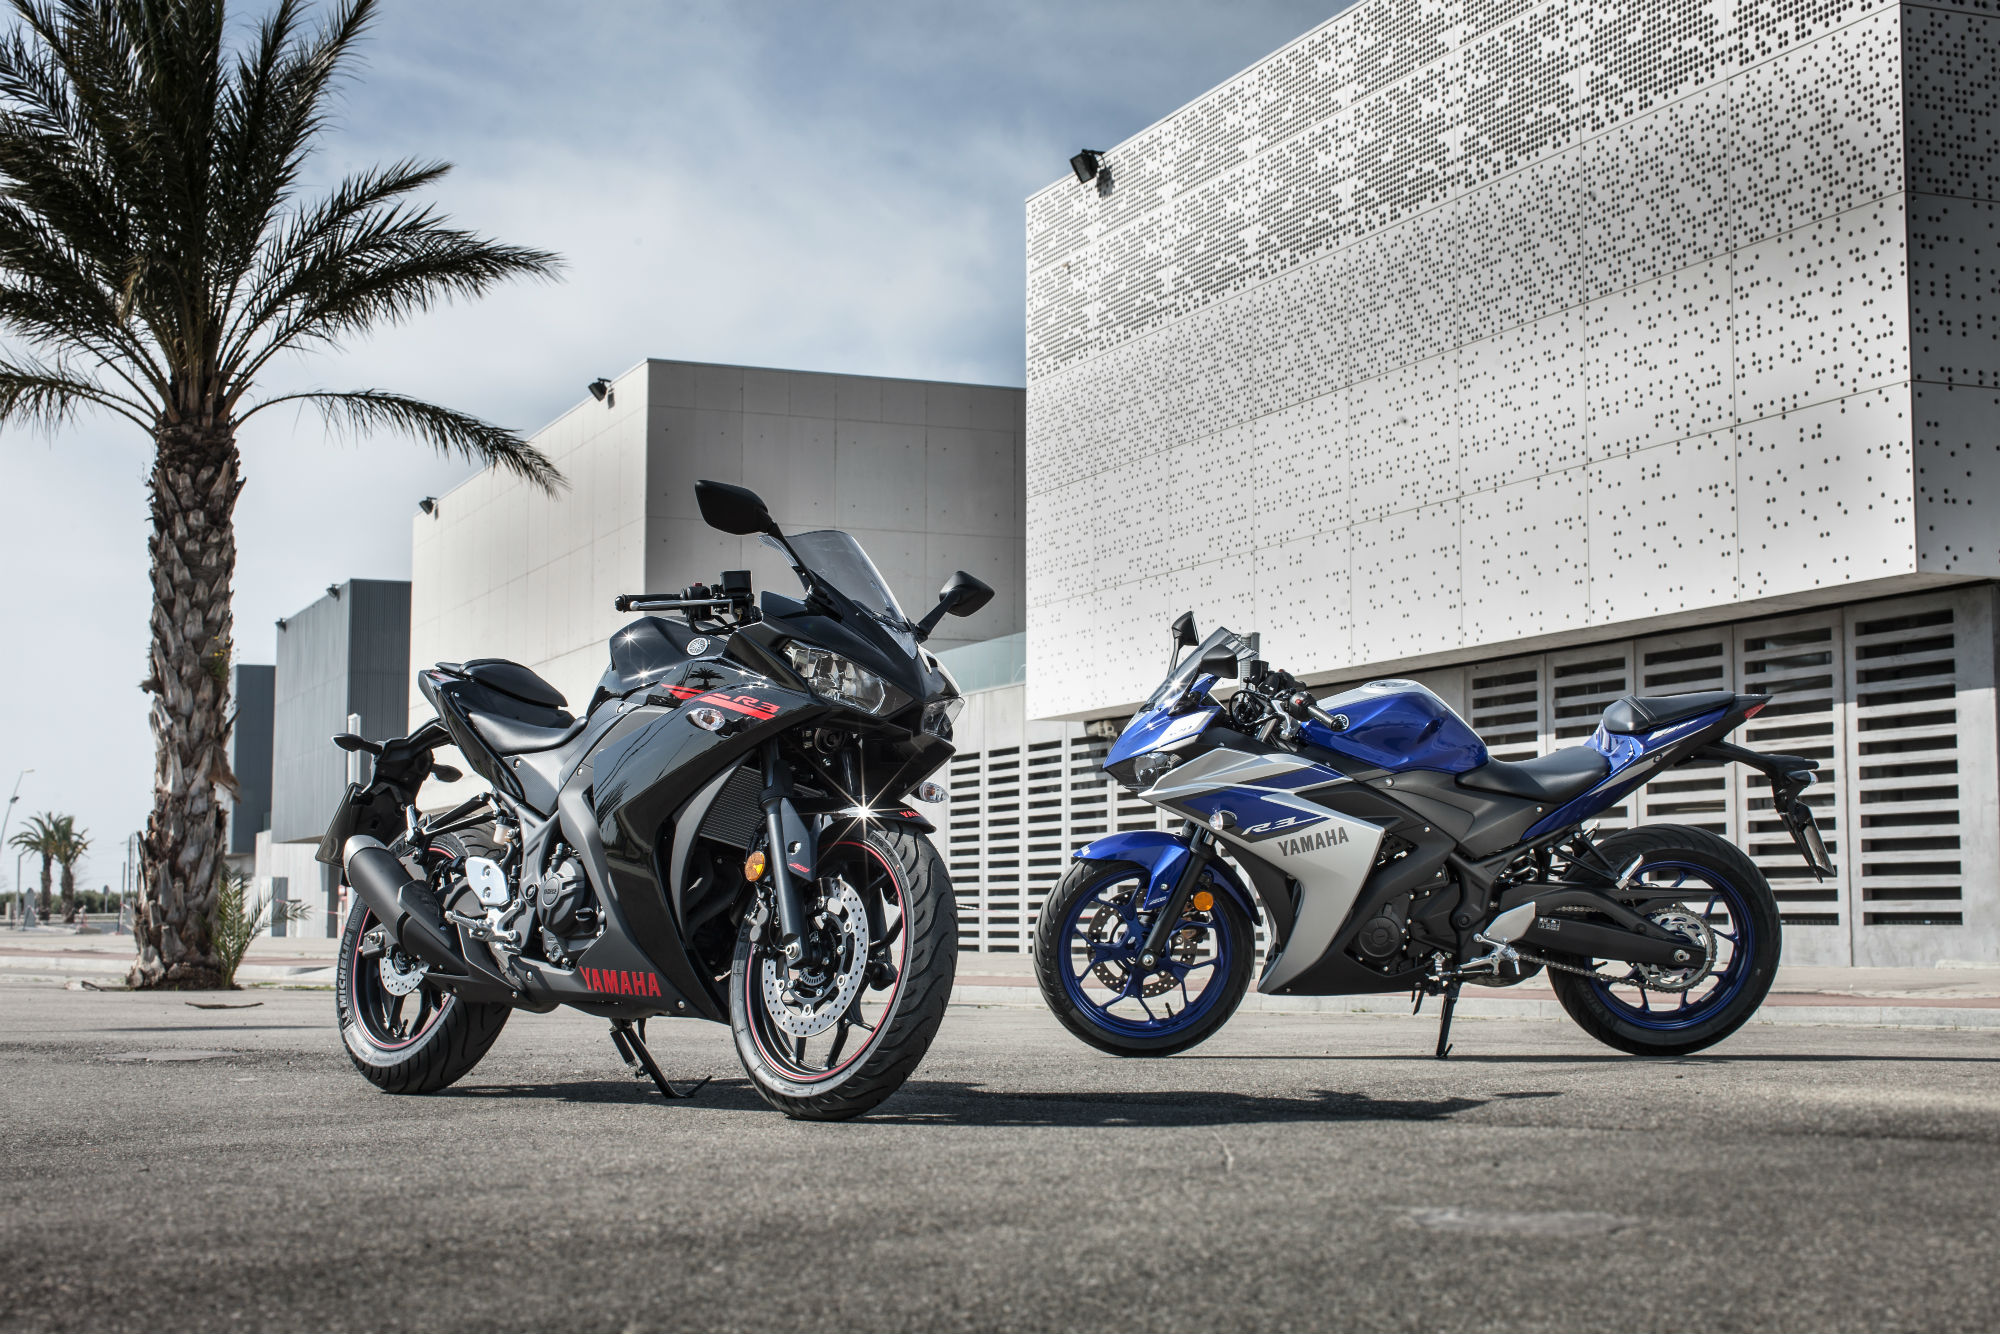 First Ride Yamaha R3 Review Visordown